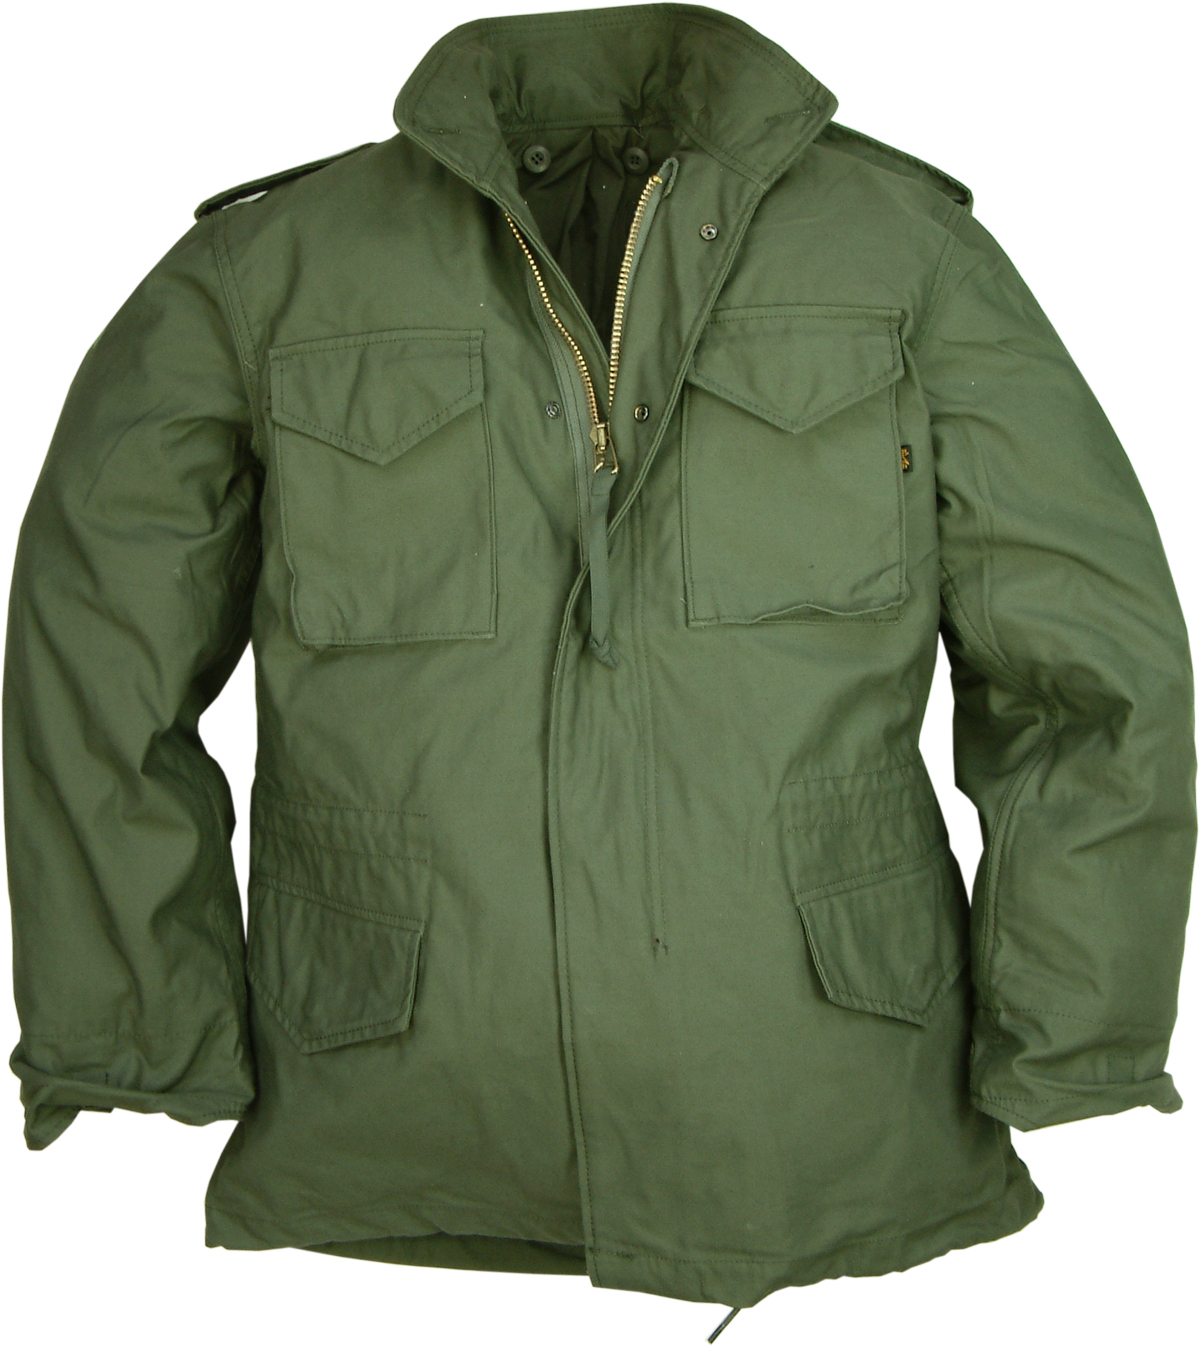 cceda2cc805 Alpha Industries M65 Field Jacket